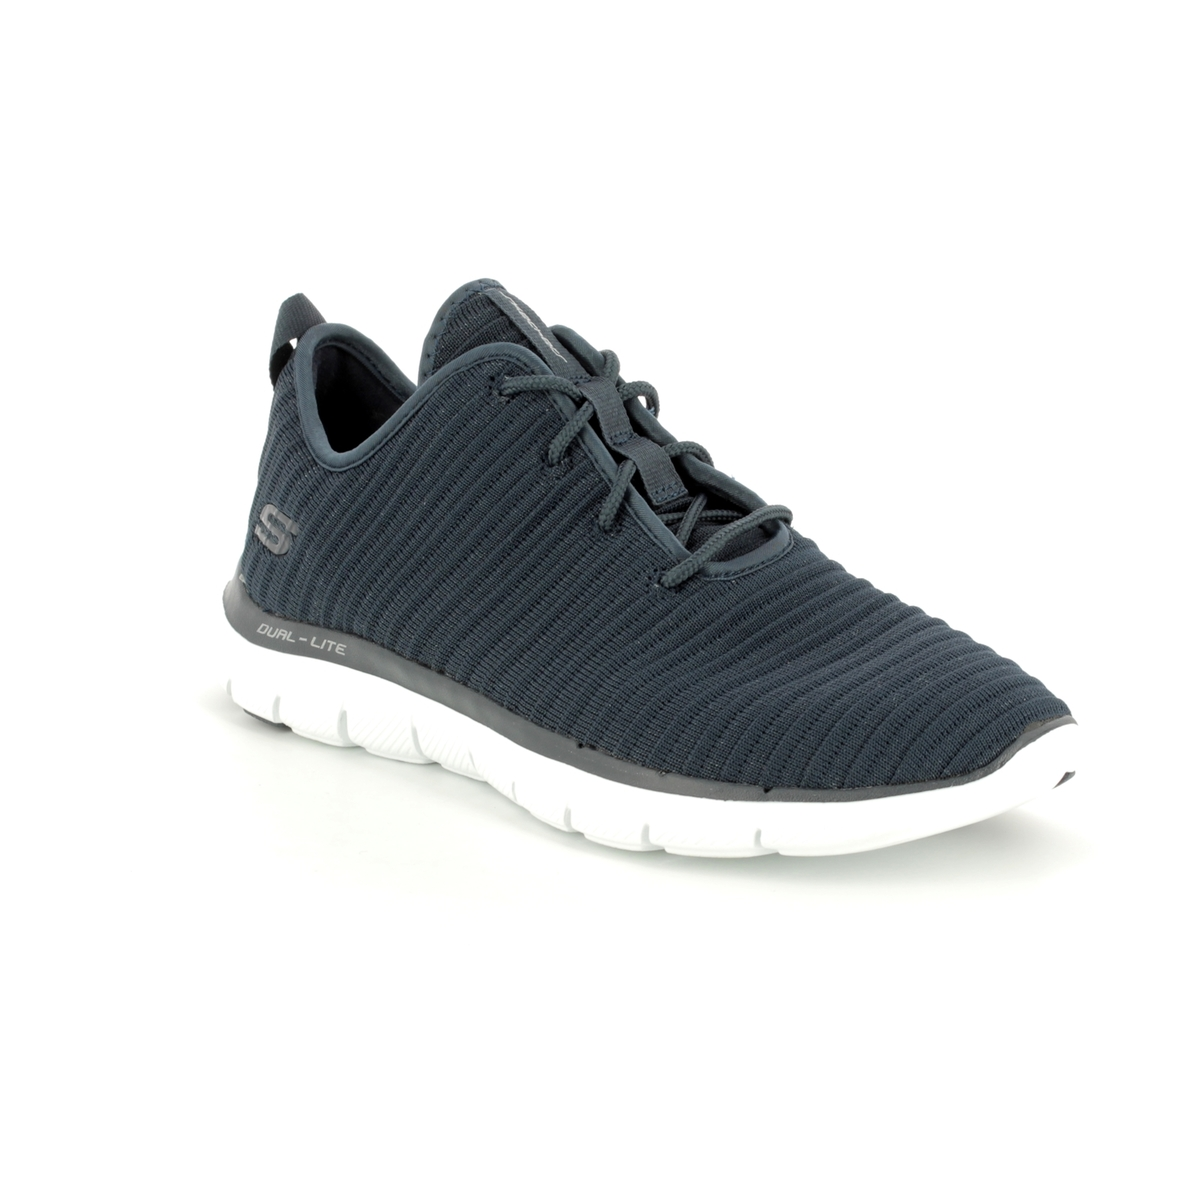 bbaab77cef4 Skechers Estates 12899 NVY Navy trainers